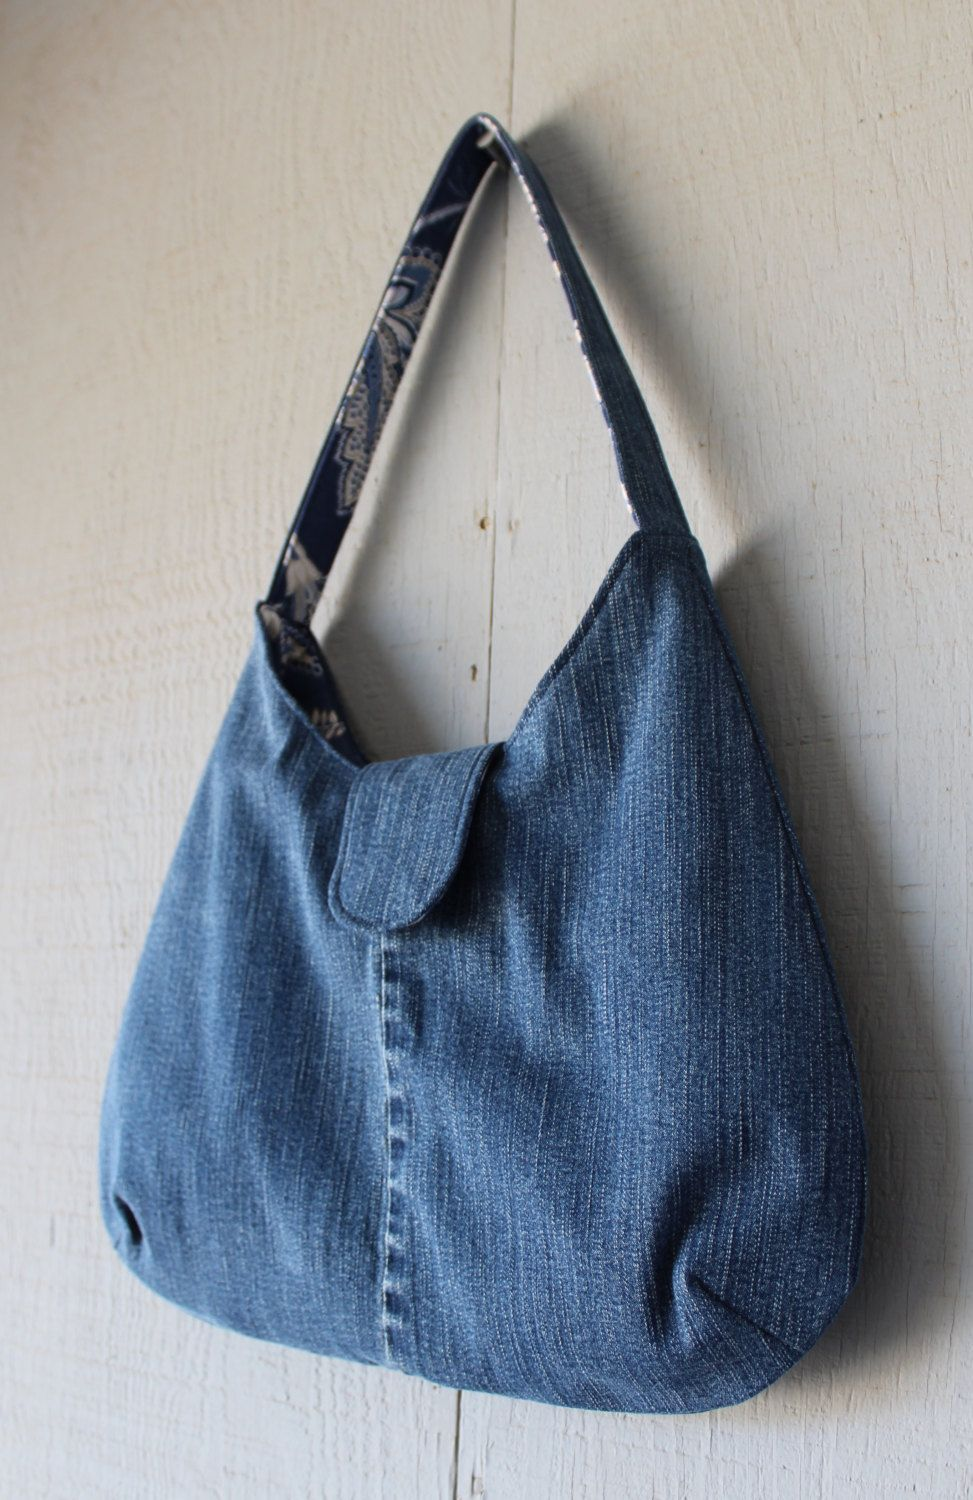 Denim Handbag with Blue Floral Canvas Lining, Front Tab with Magnetic Snap Closure and Two Interior Pockets by AllintheJeans on Etsy